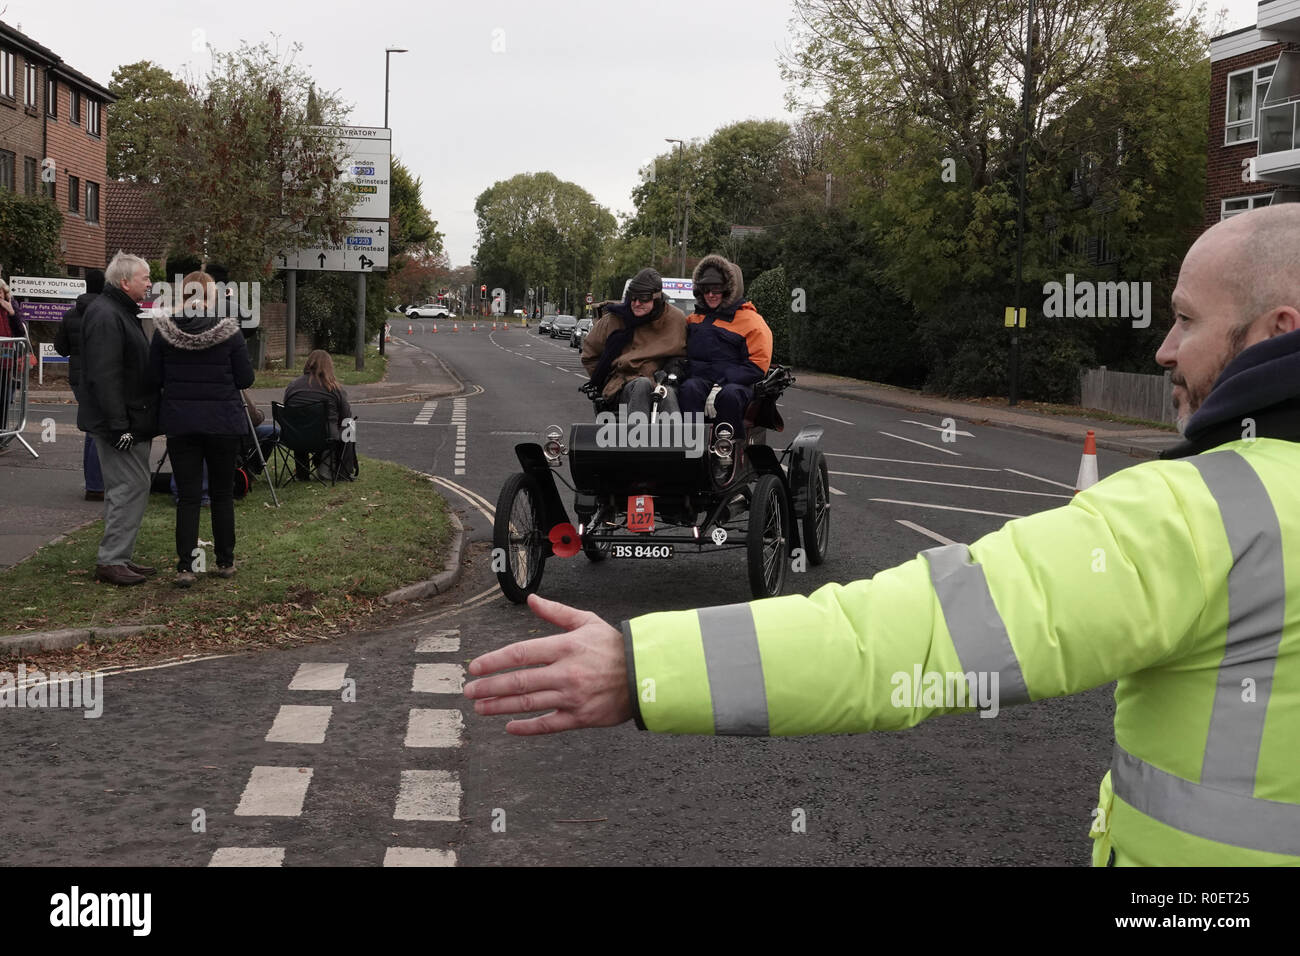 Crawley, West Sussex, UK. 4th November, 2018  Crawley, West Sussex,  UK  Veteran automobiles and their crew at the halfway stage where cars stopped at the Honda garage in Crawley on the Bonhams sponsored London to Brighton Veteran car run halfway stop at the Honda showroom in Crawley, Credit: Motofoto/Alamy Live News Stock Photo